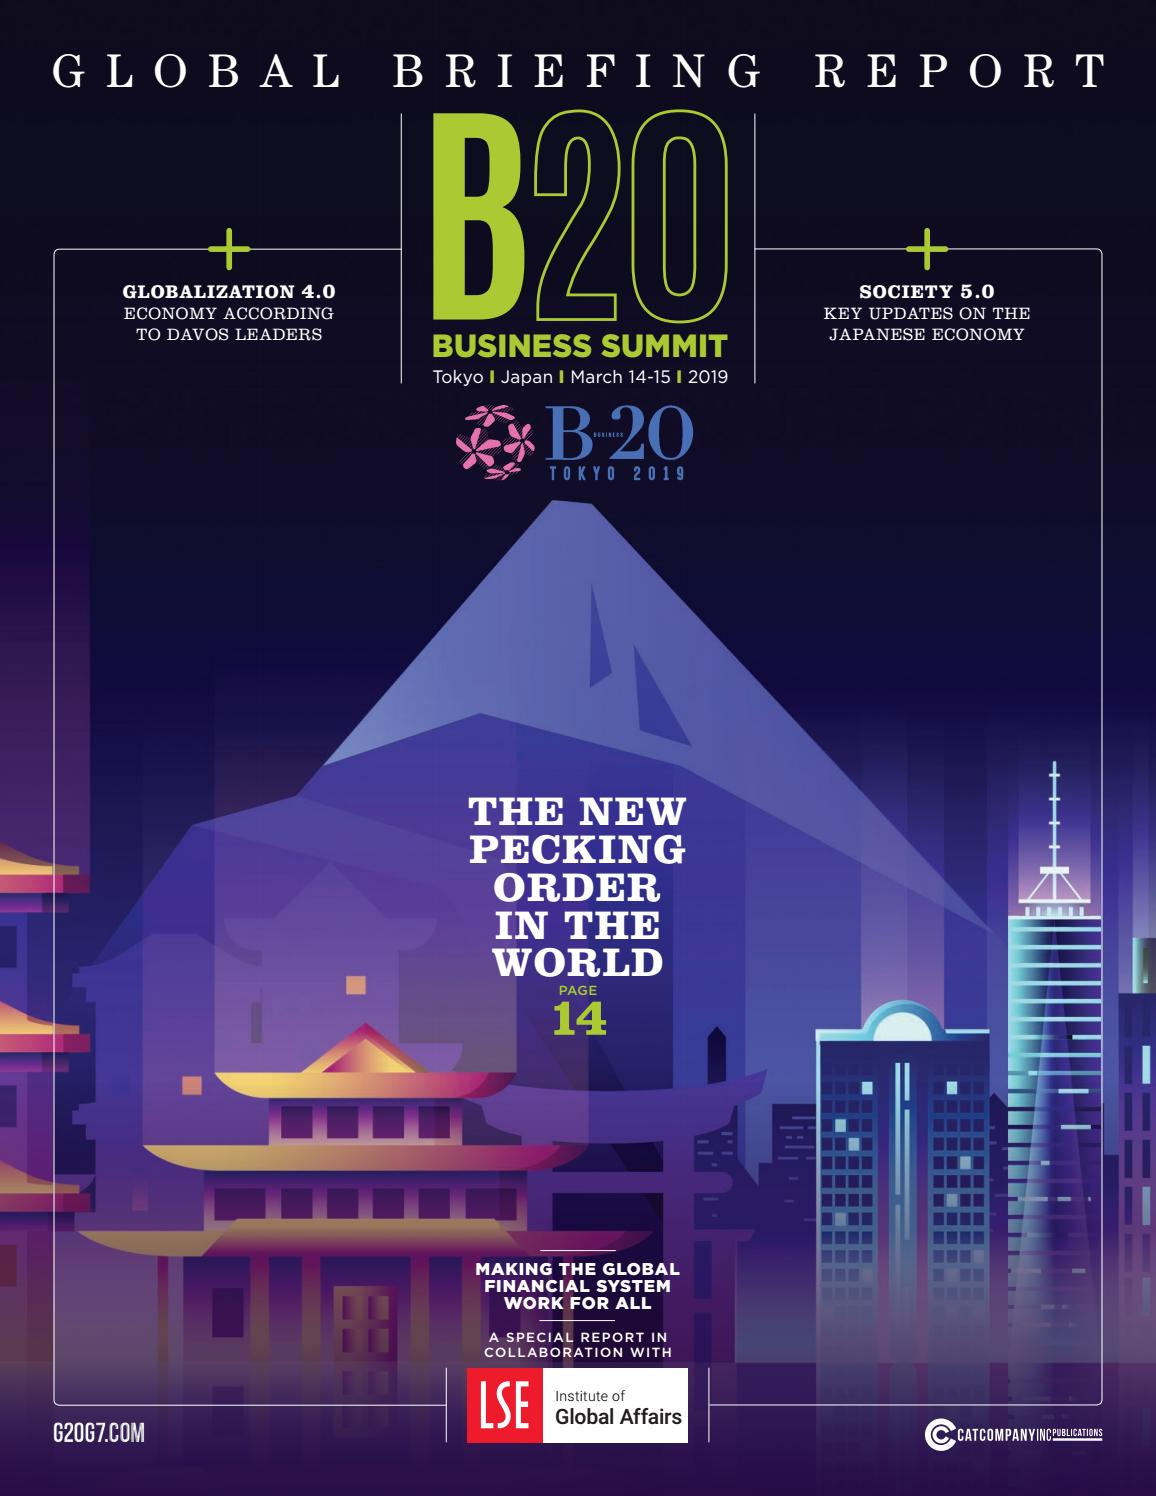 Ancor Coalition Urge Fda To Act On Banning Electronic Shock >> The B20 Japan Summit Global Briefing Report In Collaboration